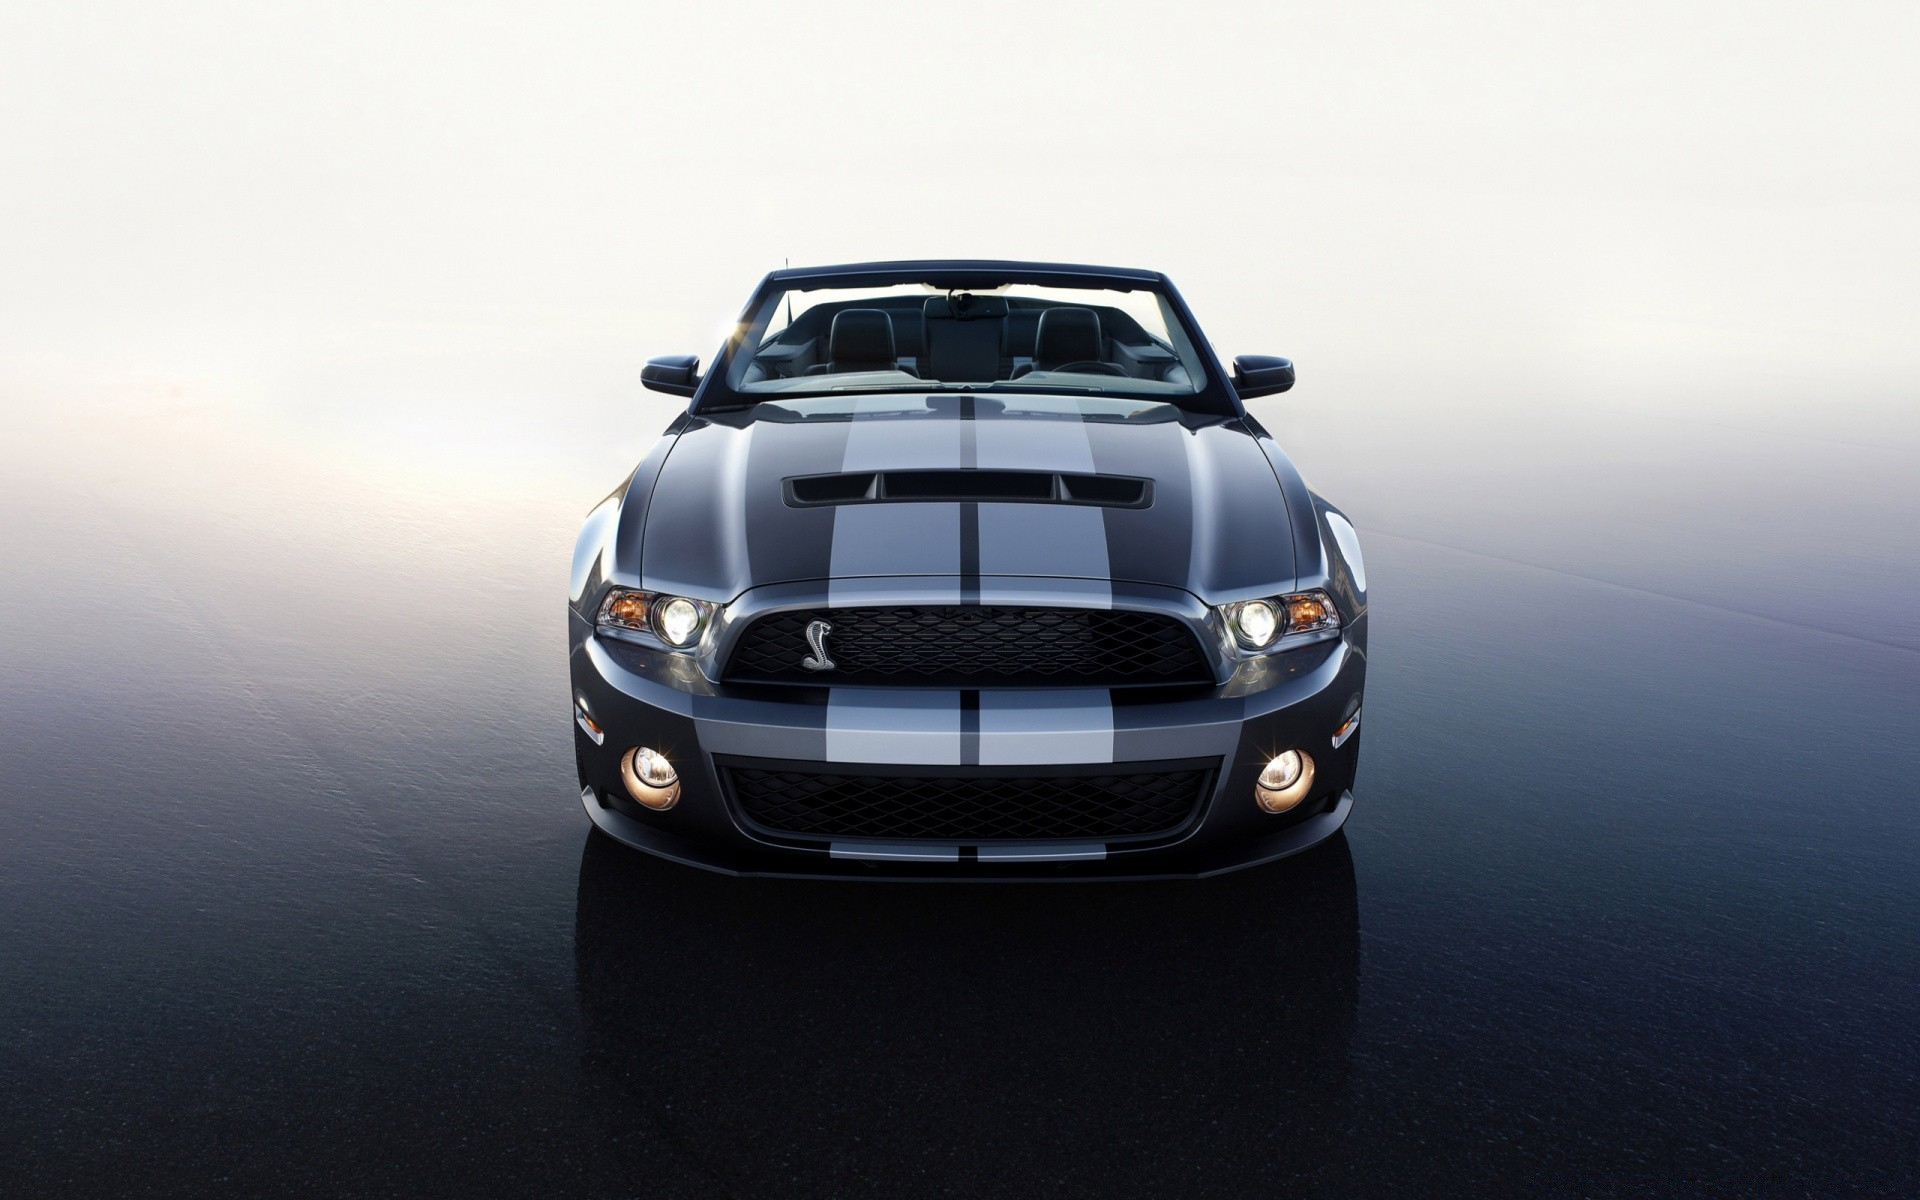 Ford Mustang Shelby Convertible IPhone Wallpapers For Free